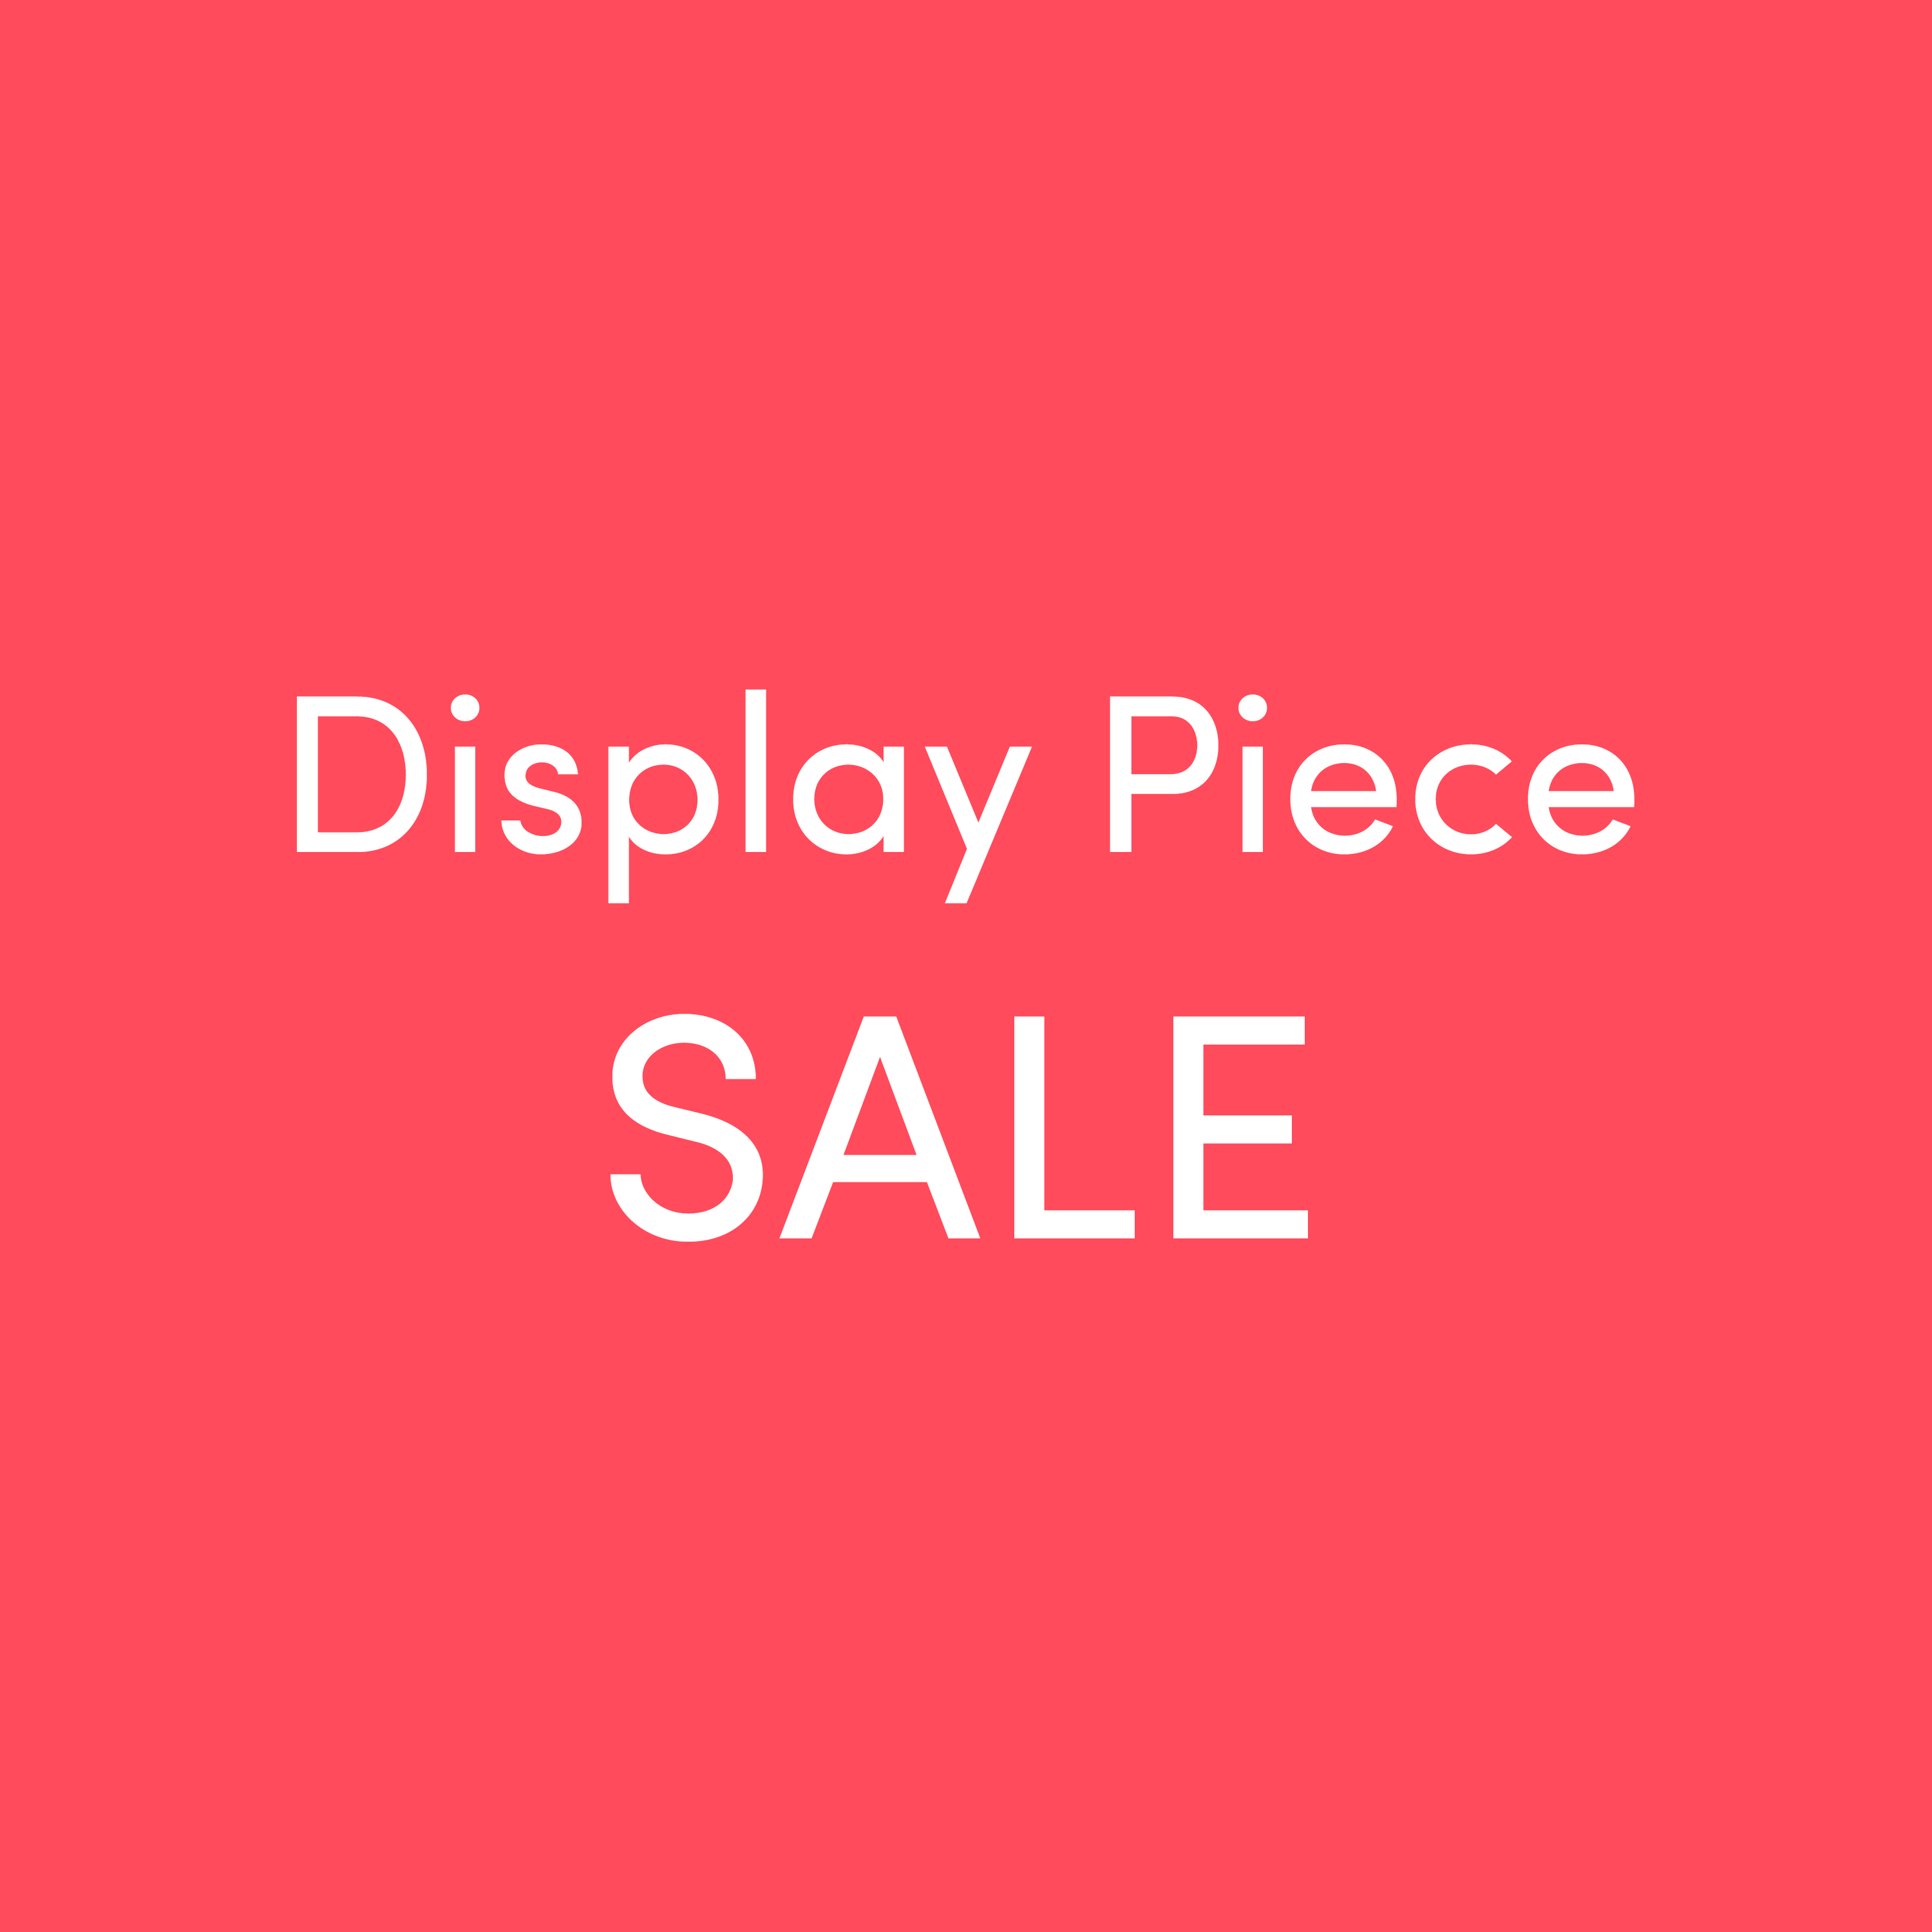 Display Piece (40% Off)